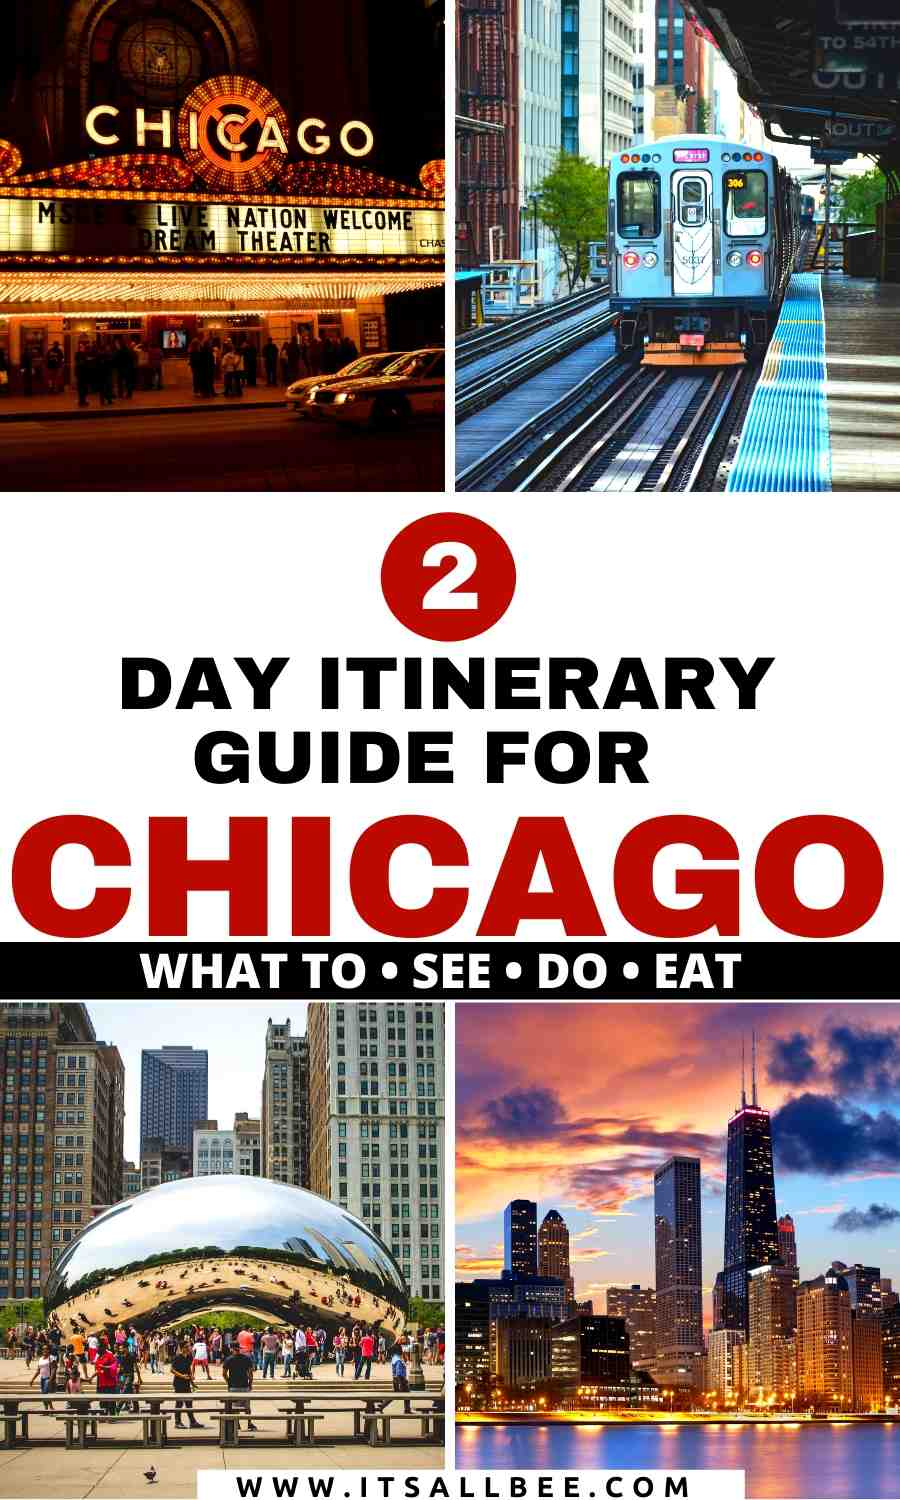 what to see and do in Chicago in 2 days - an itinerary guide